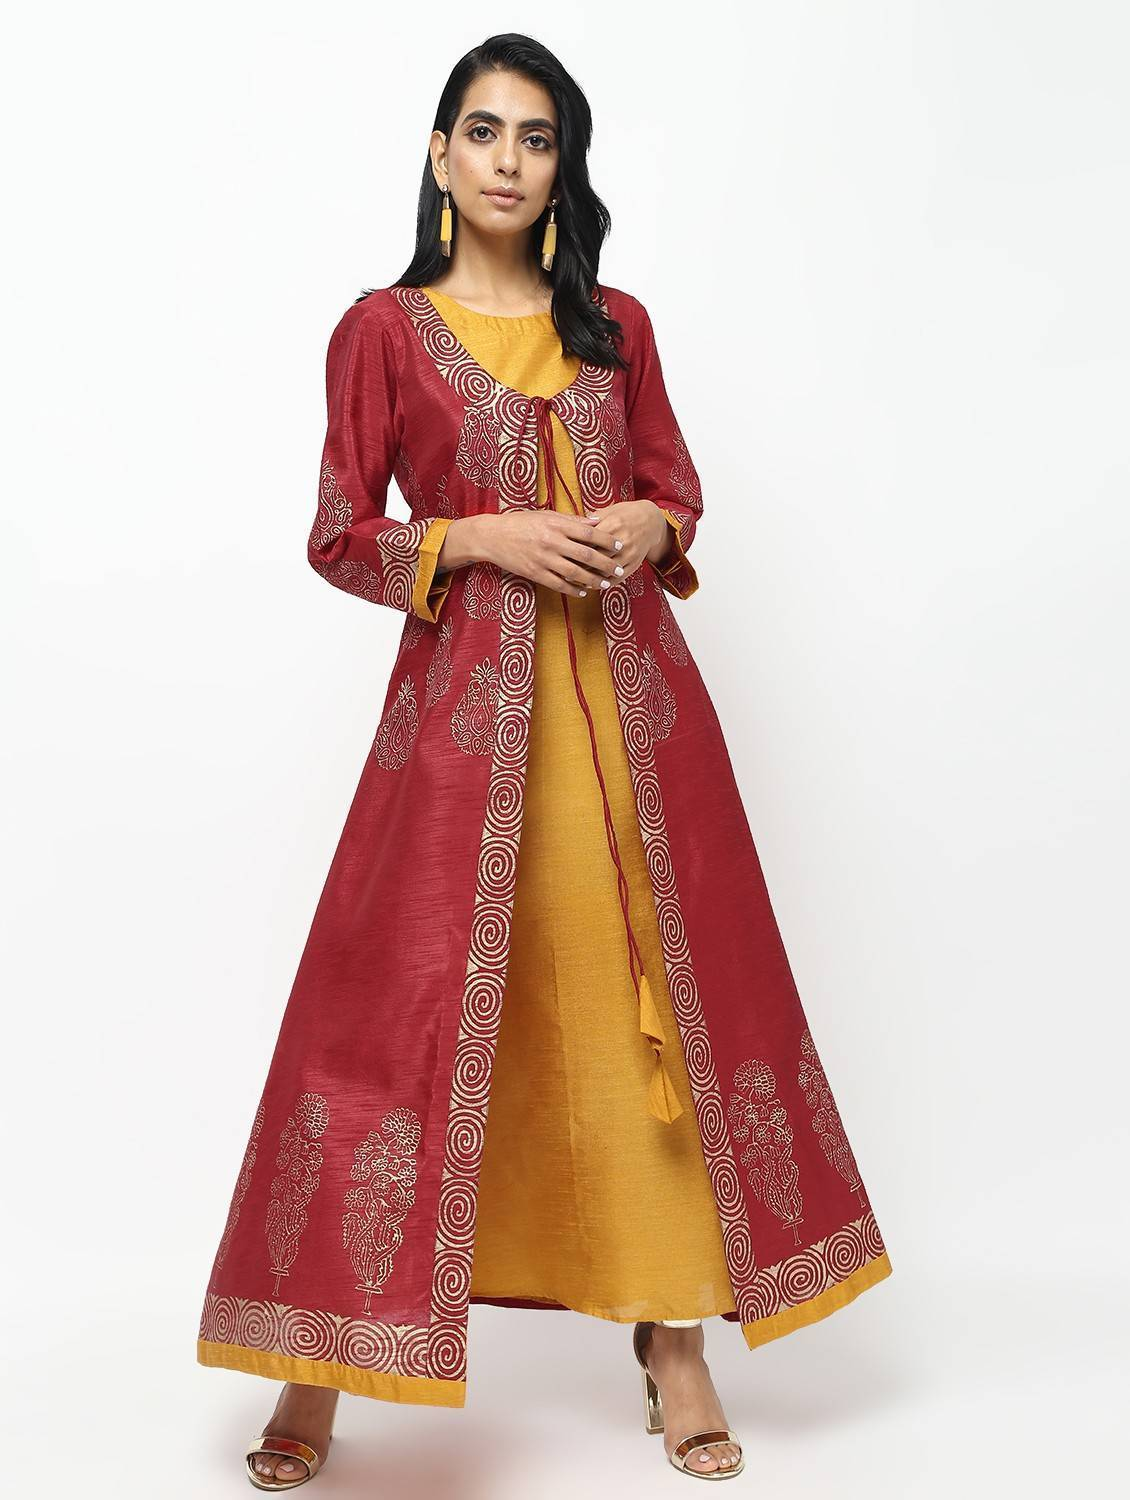 Double Layer Long Anarkali With Beautiful Block Print Design Kurta